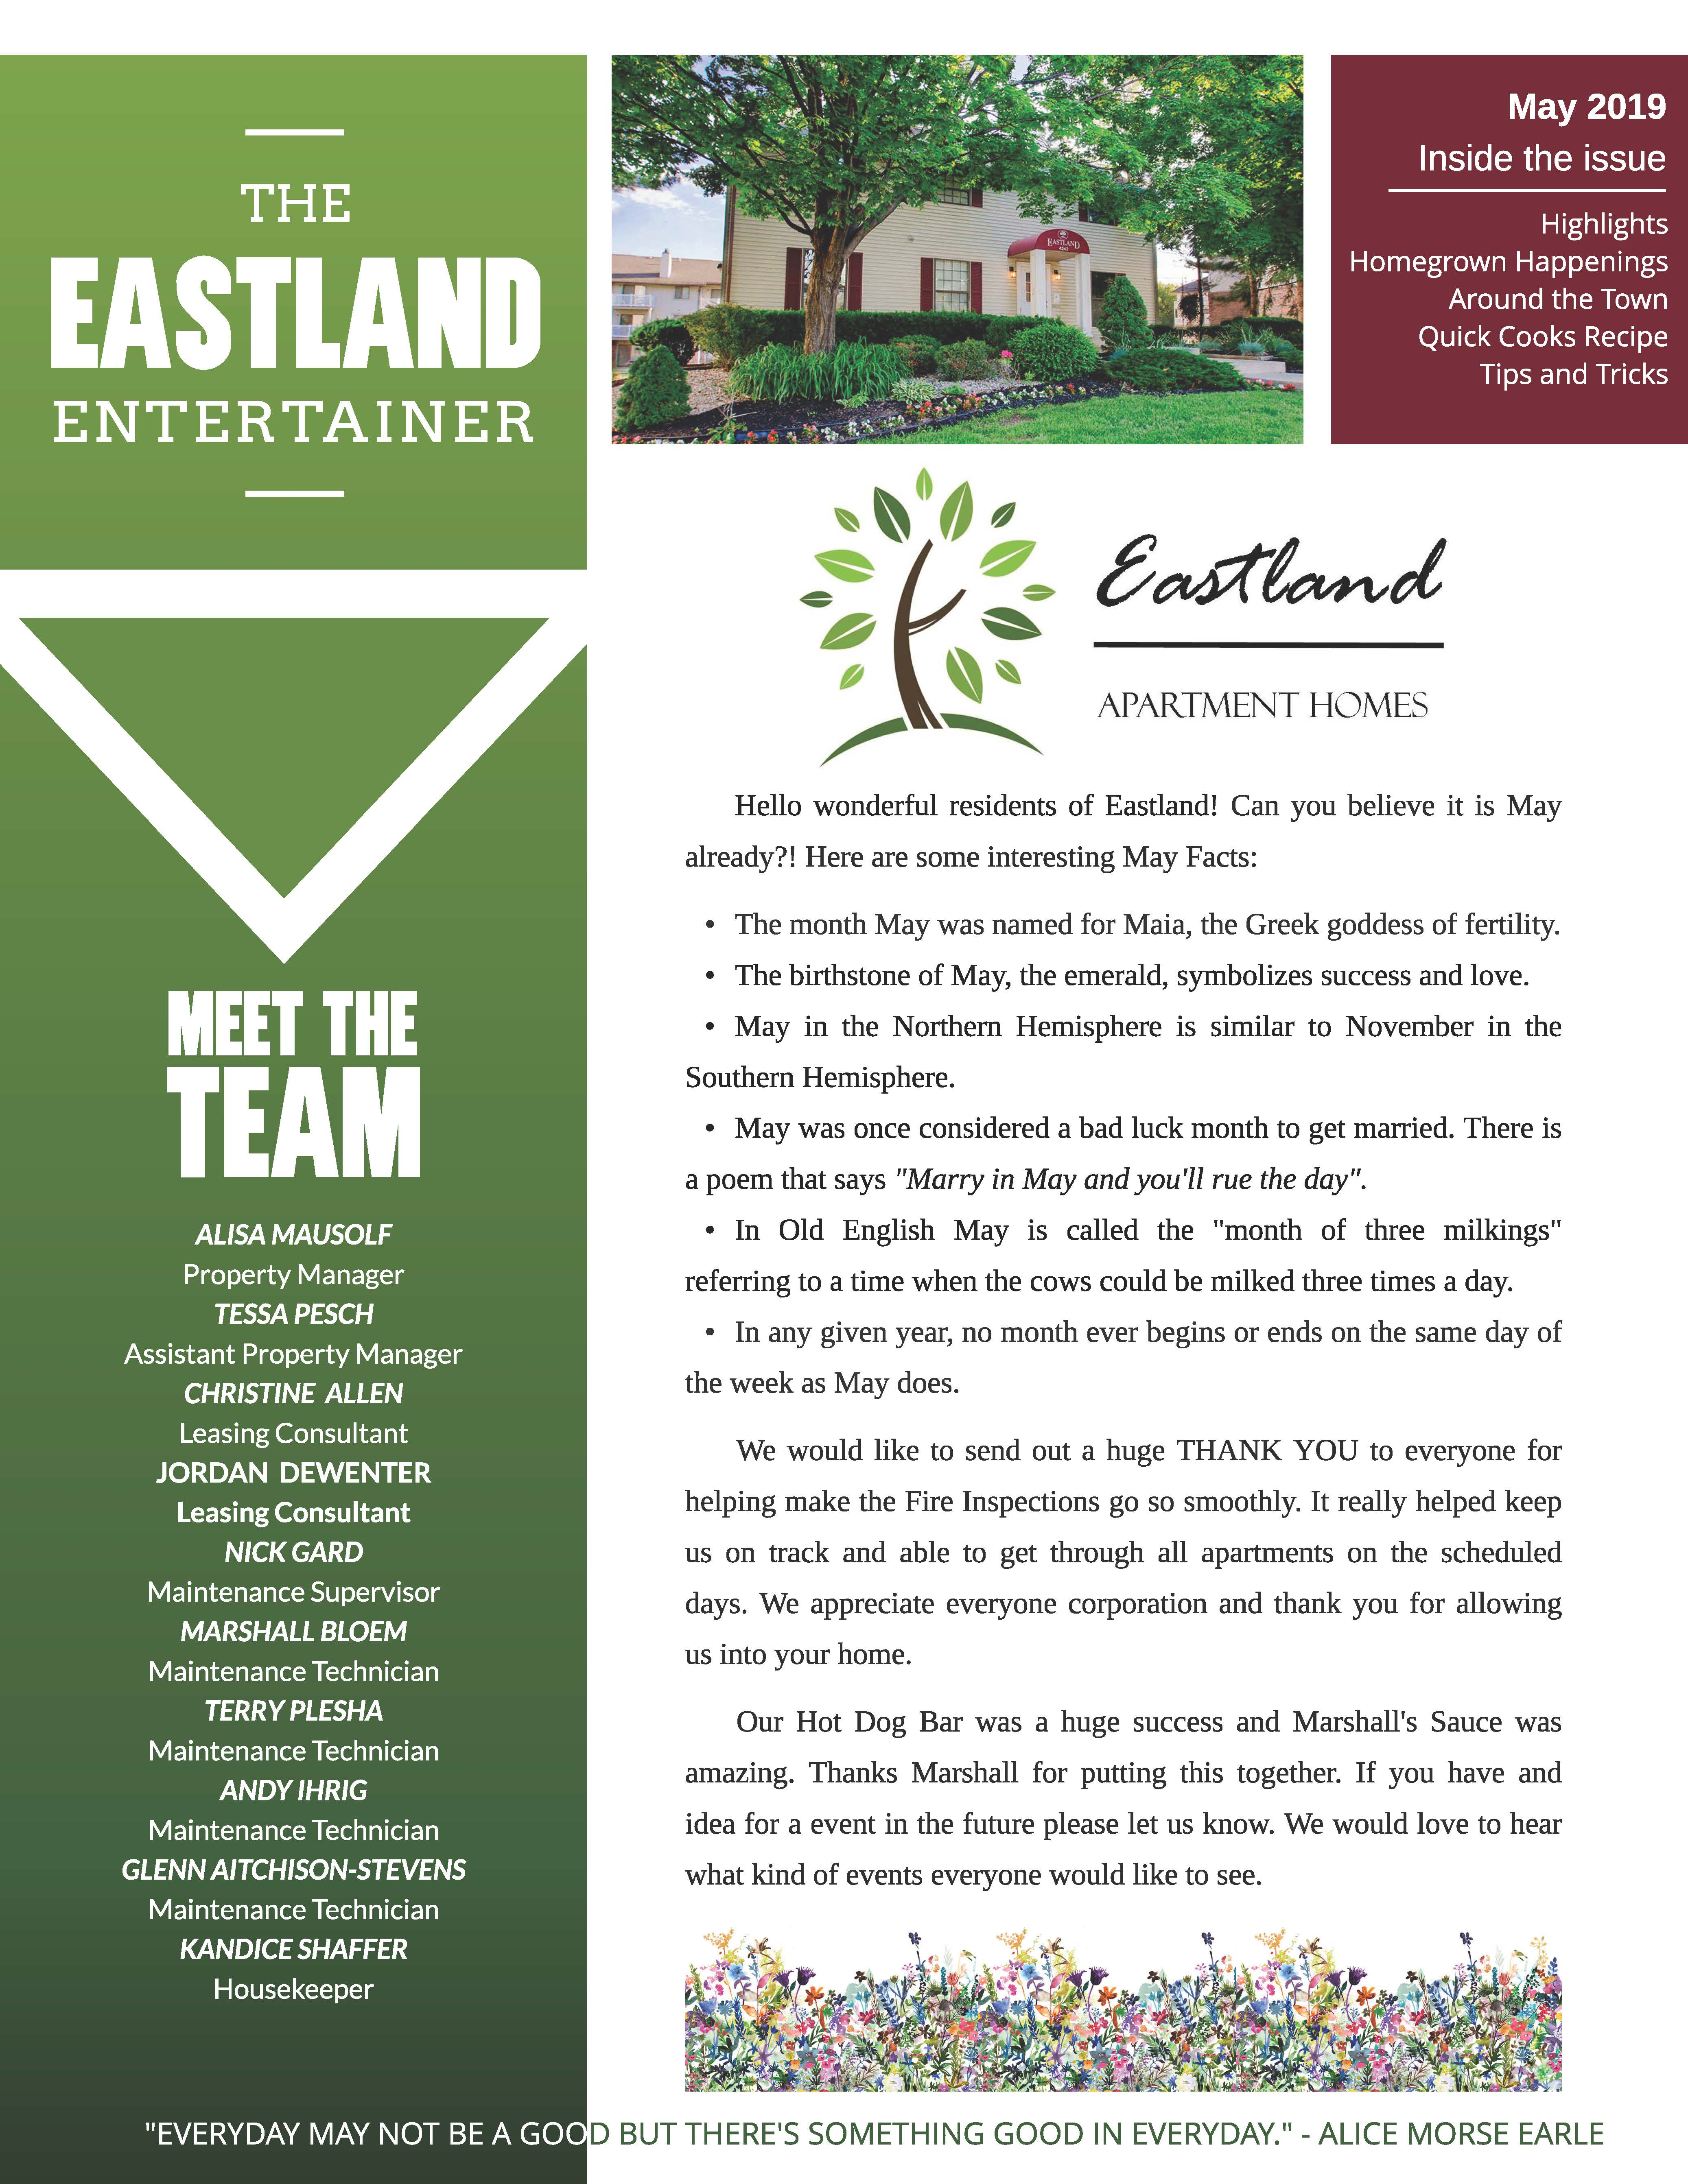 May 2019 Newsletter The Eastland Entertainer